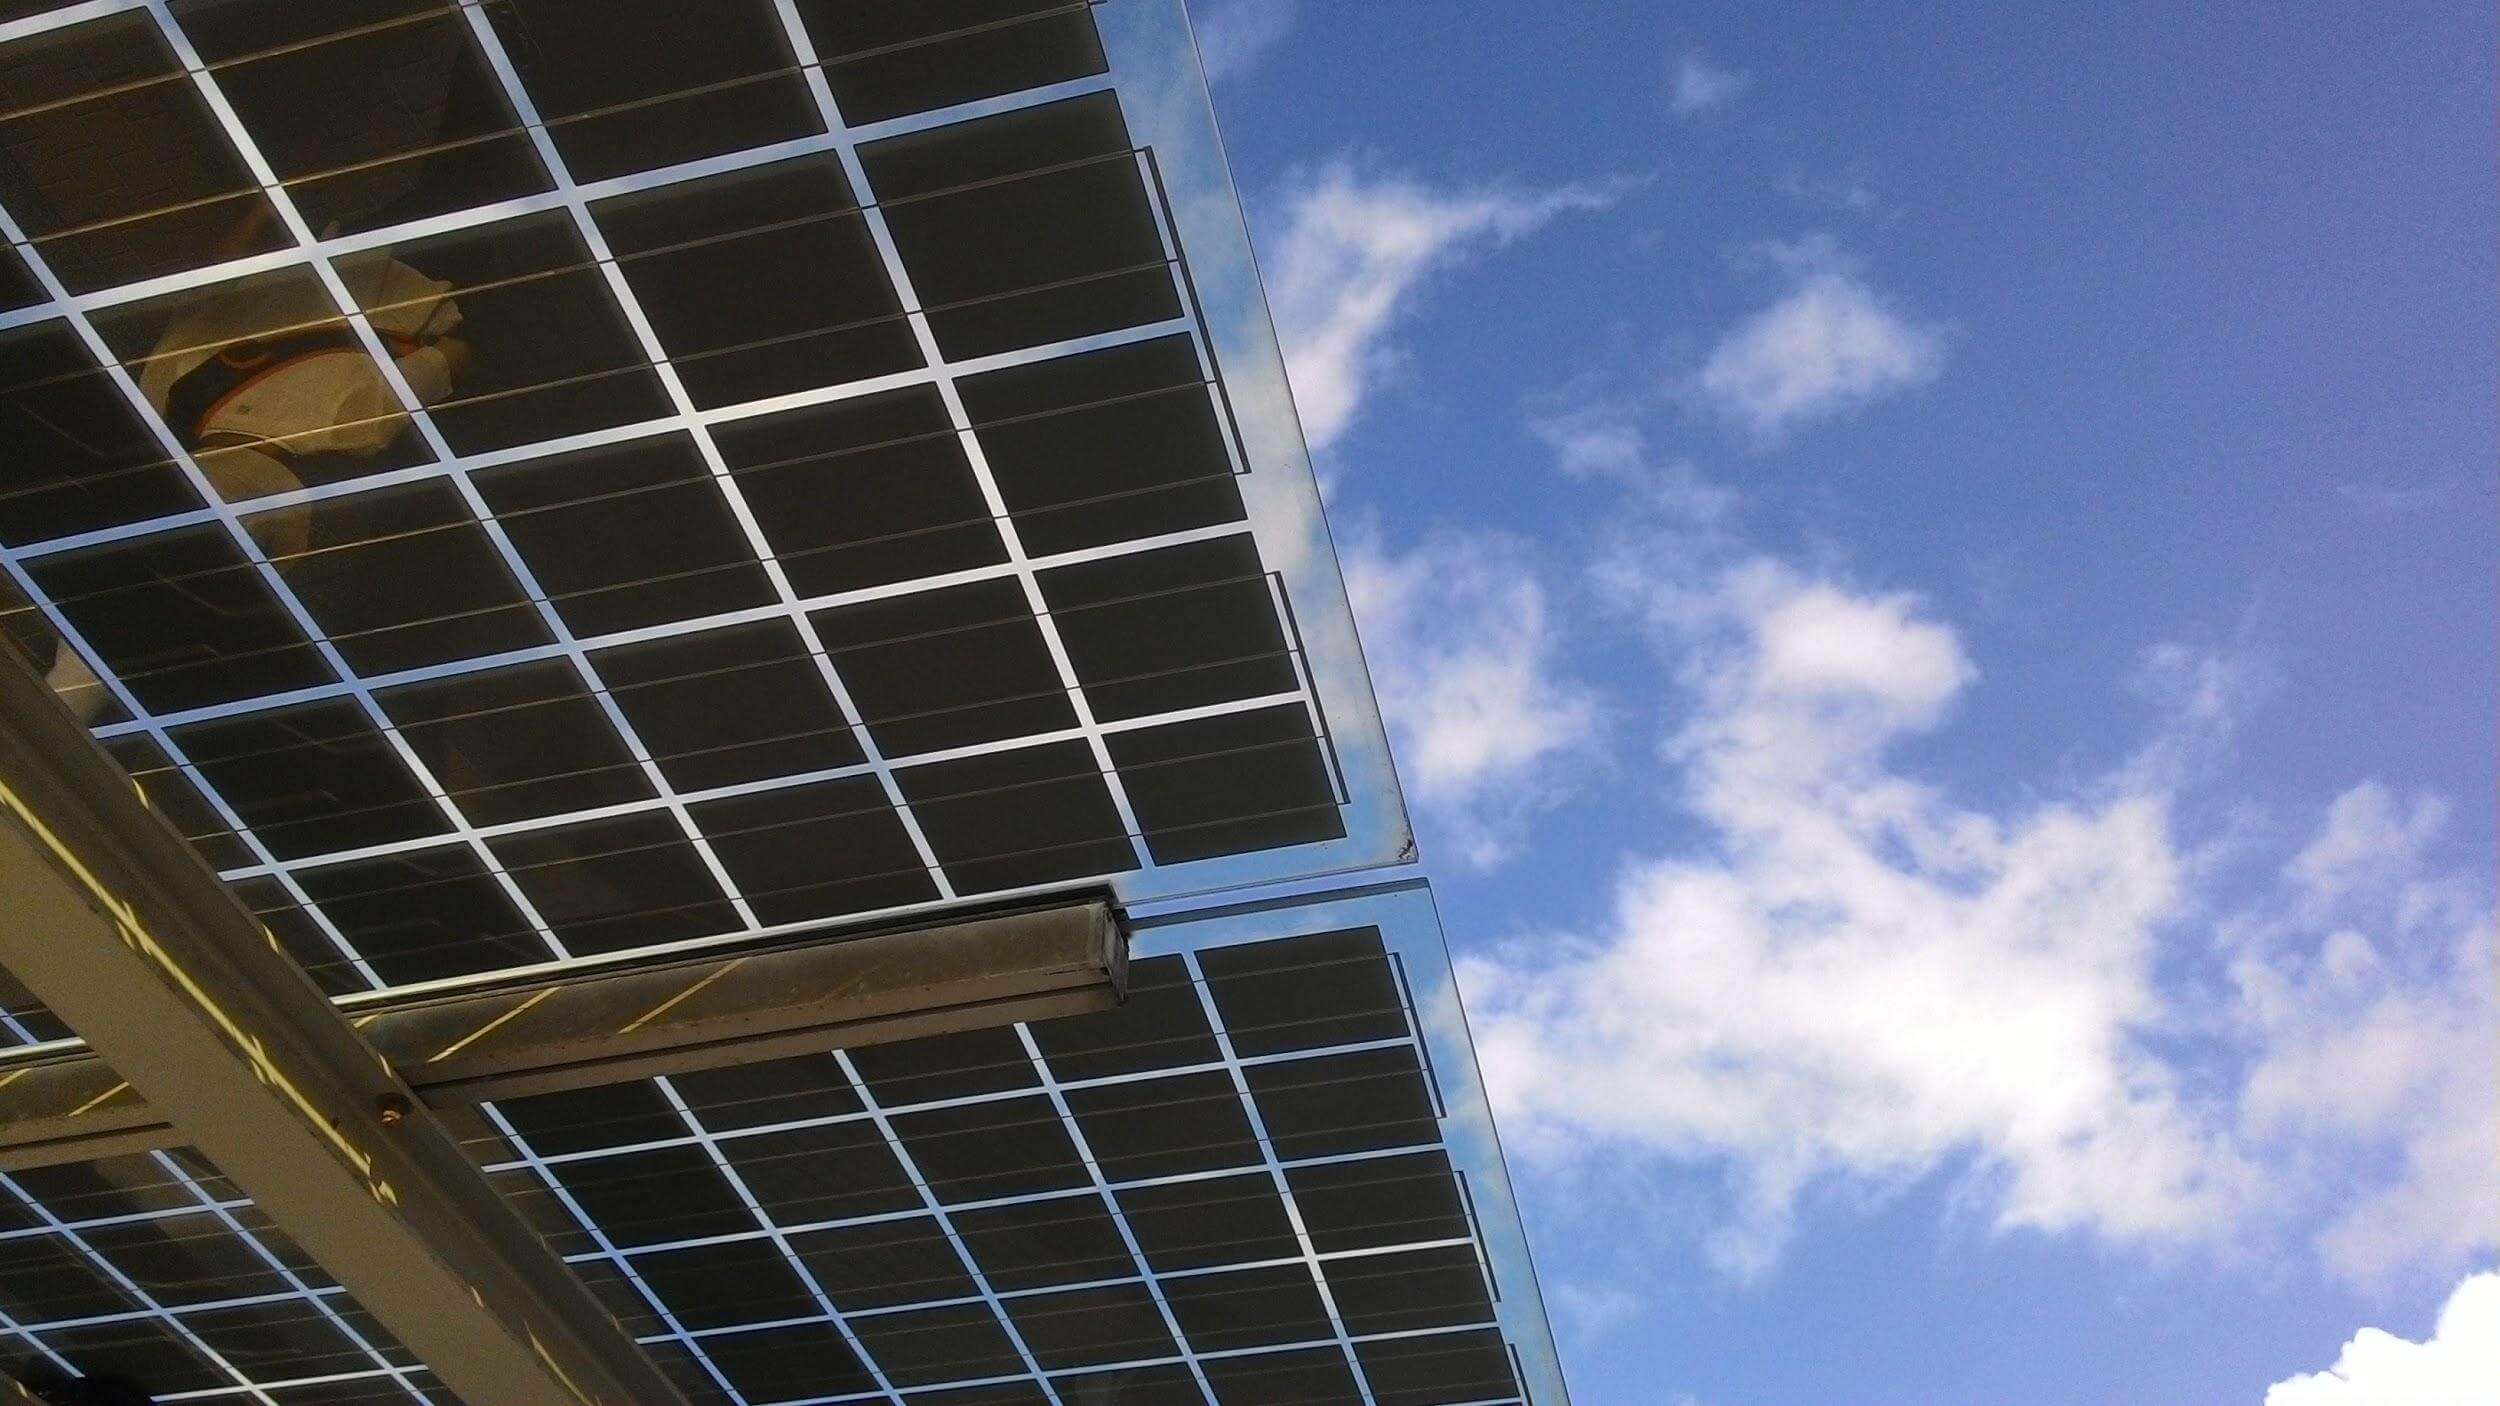 install solar panels to lower costs